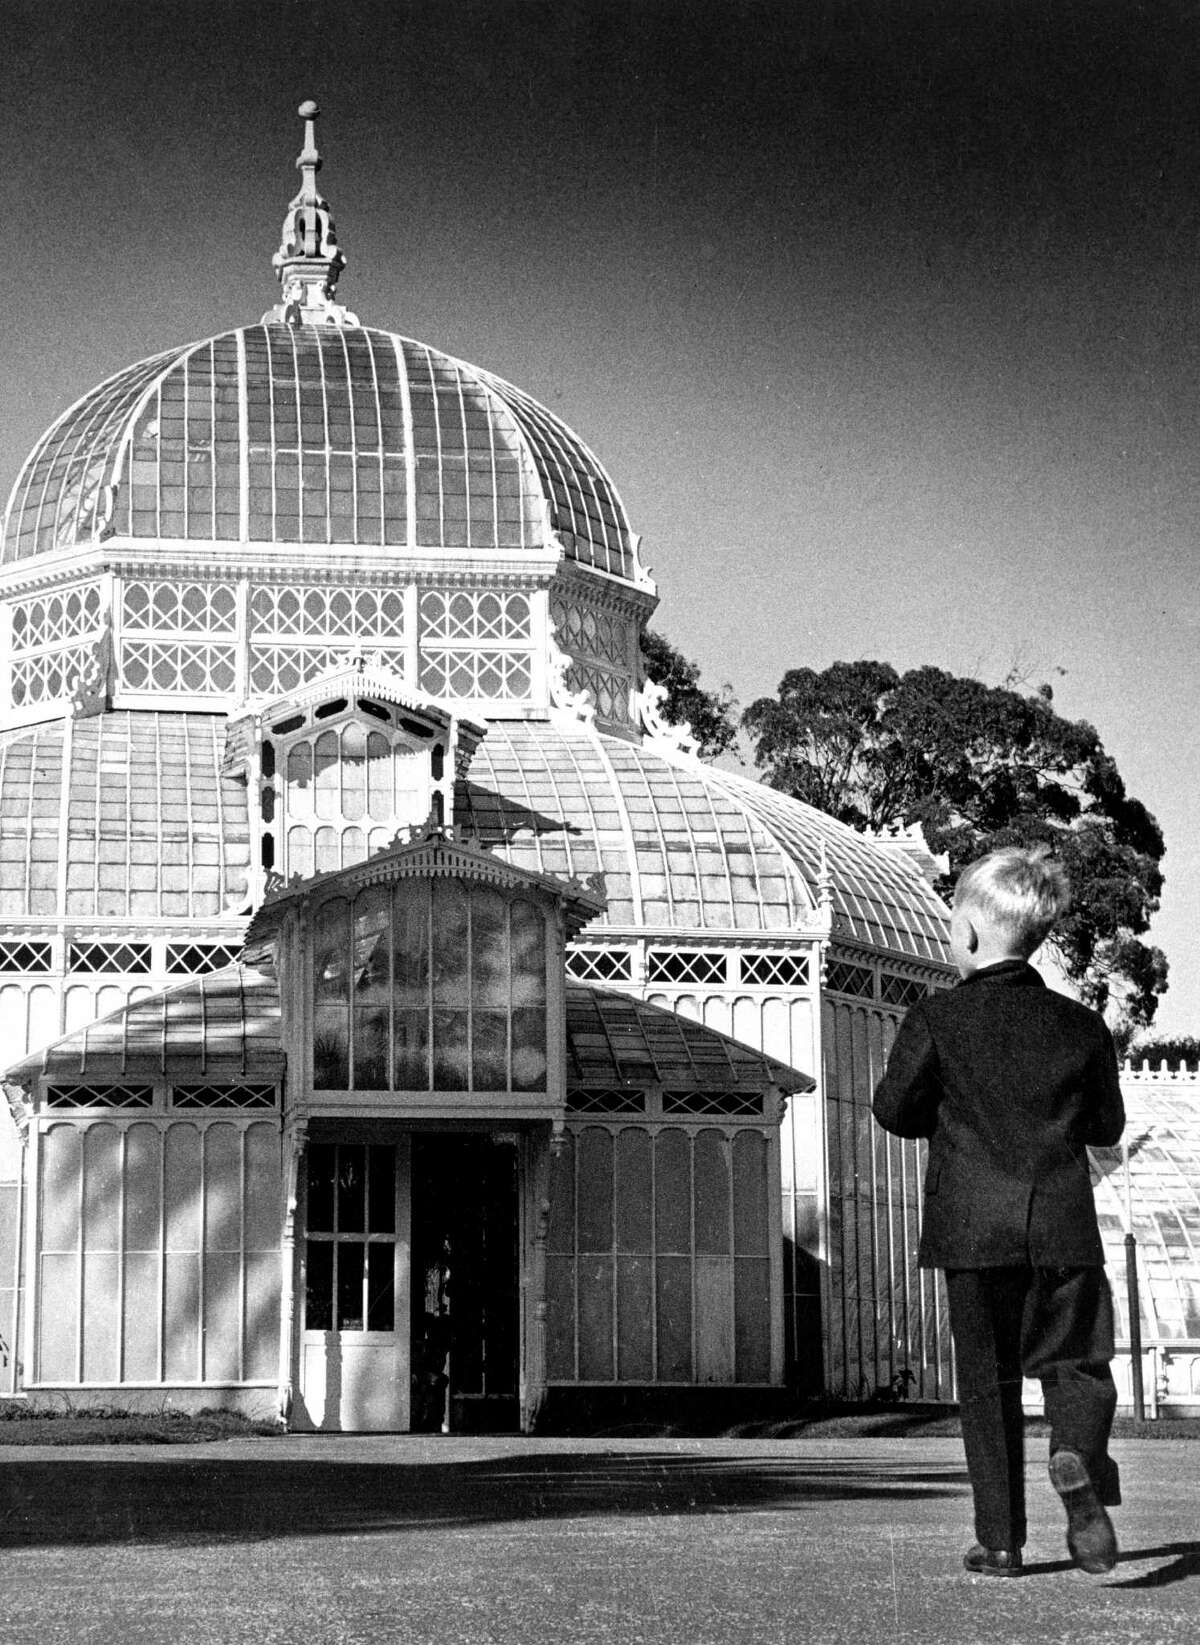 A boy stands outside at the Conservatory of Flowers in Golden Gate Park.